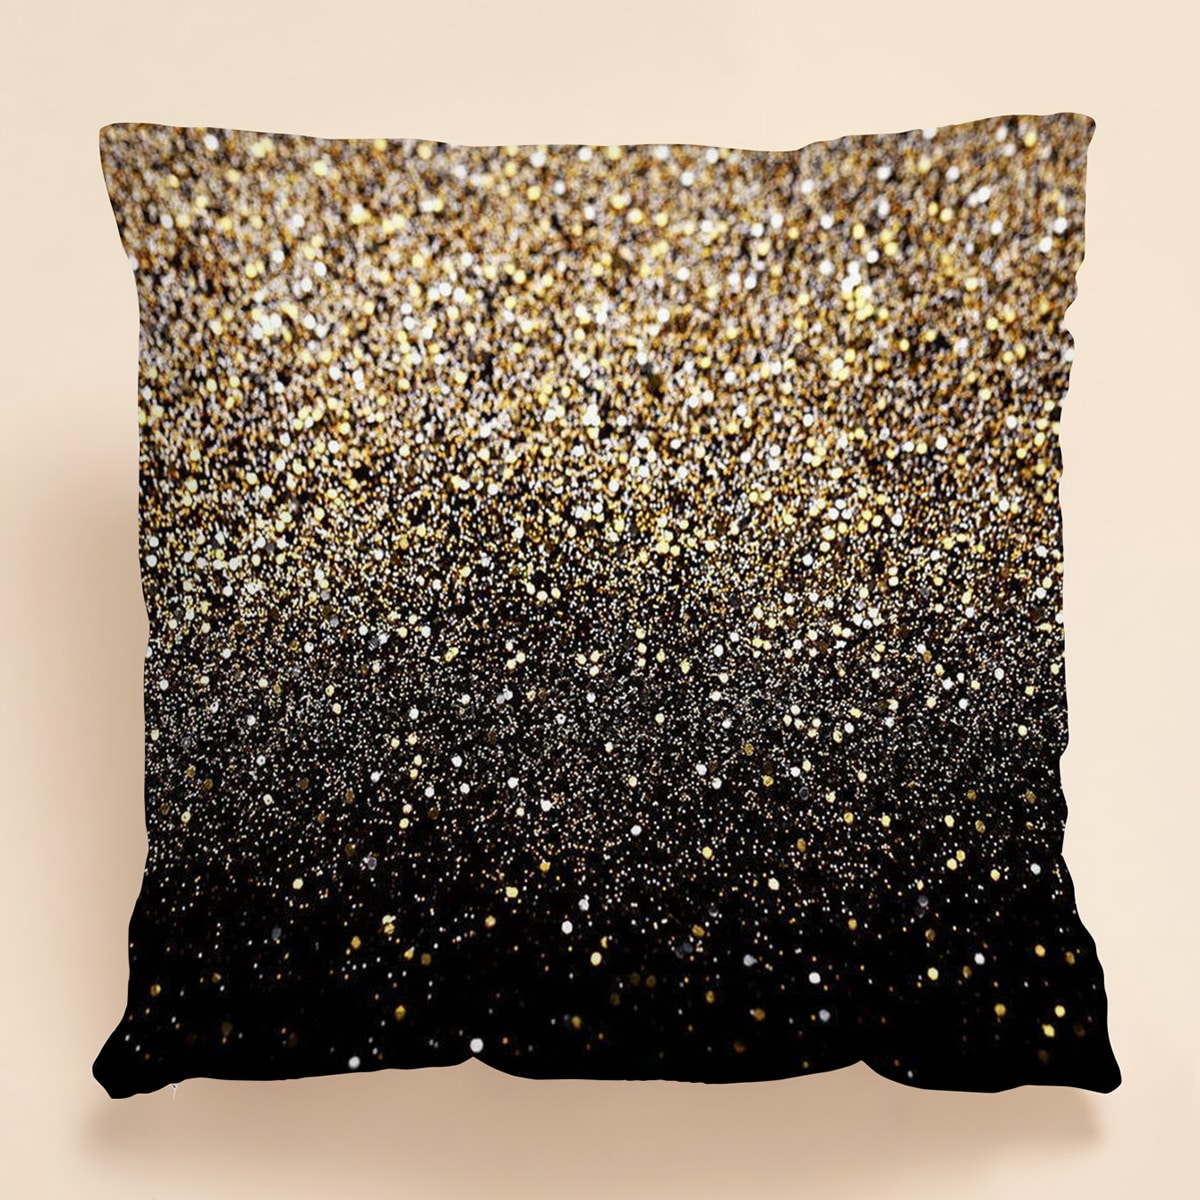 Gradient Print Cushion Cover Without Filler